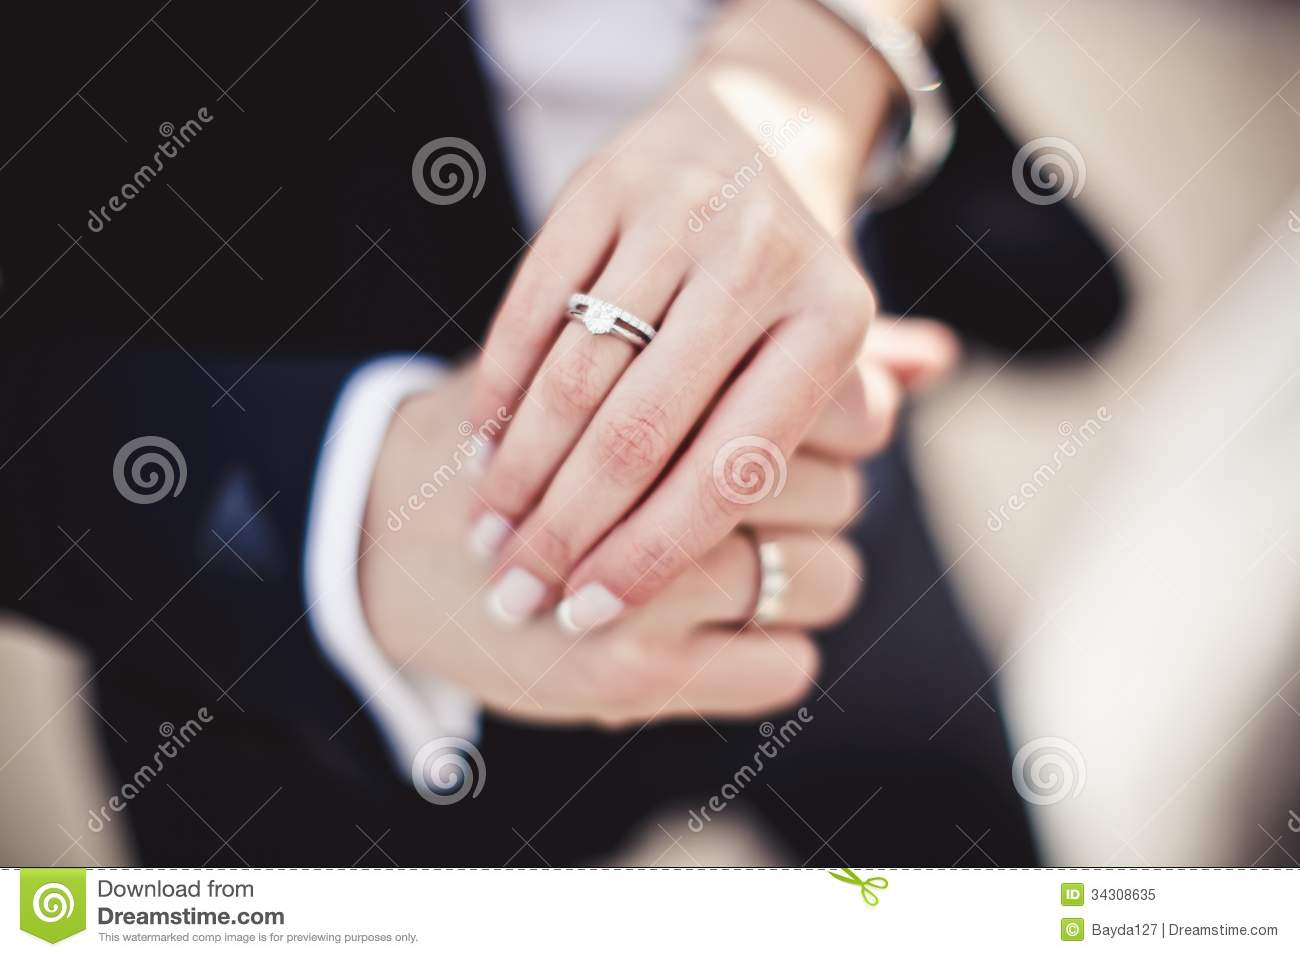 Holding Hands With Wedding Rings Stock Image - Image of female, life ...